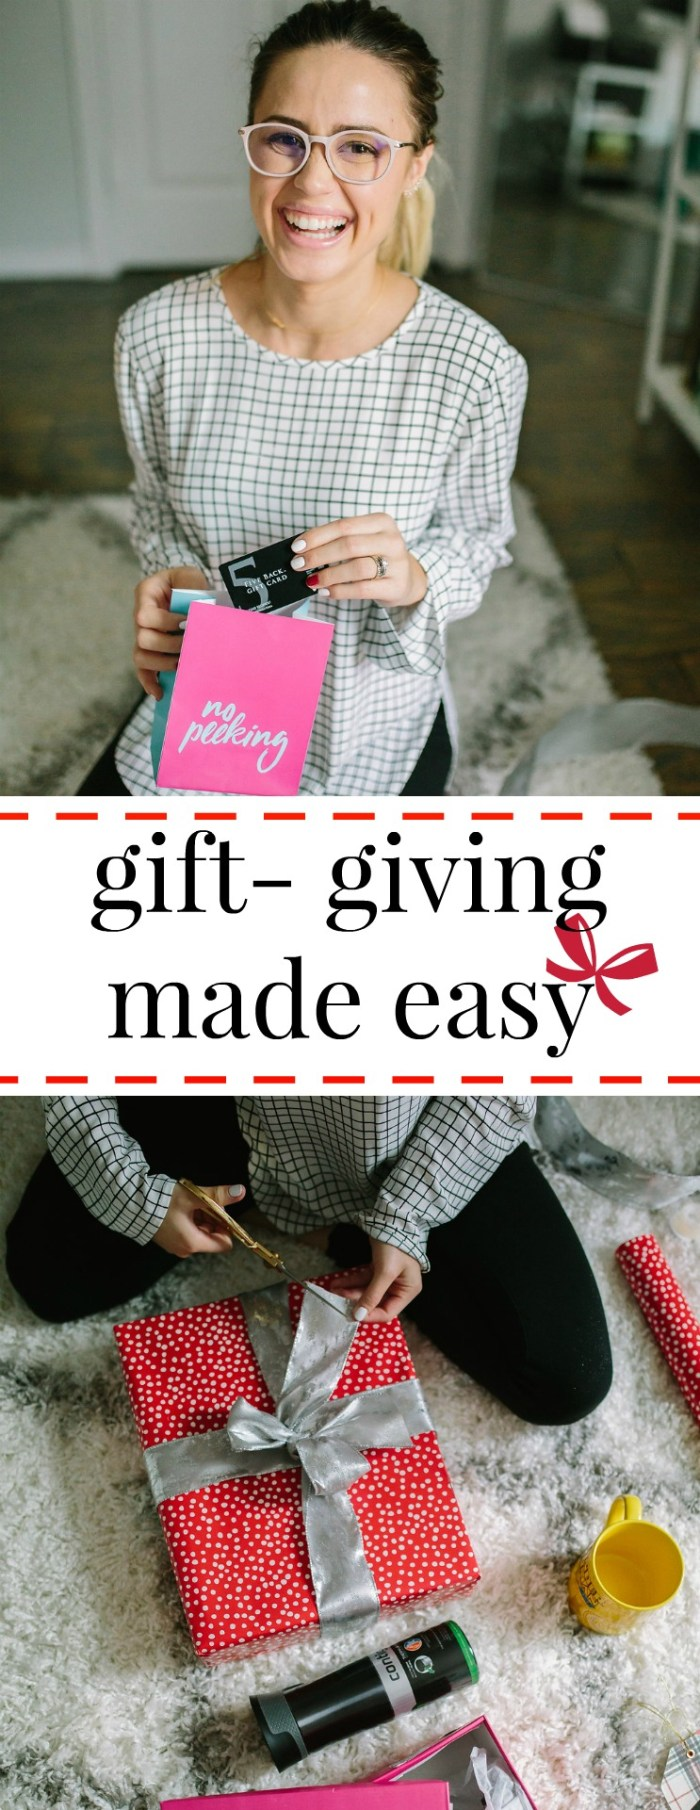 Gift giving made easy | Give gifting for your loved ones | Gift ideas | Uptown with Elly Brown